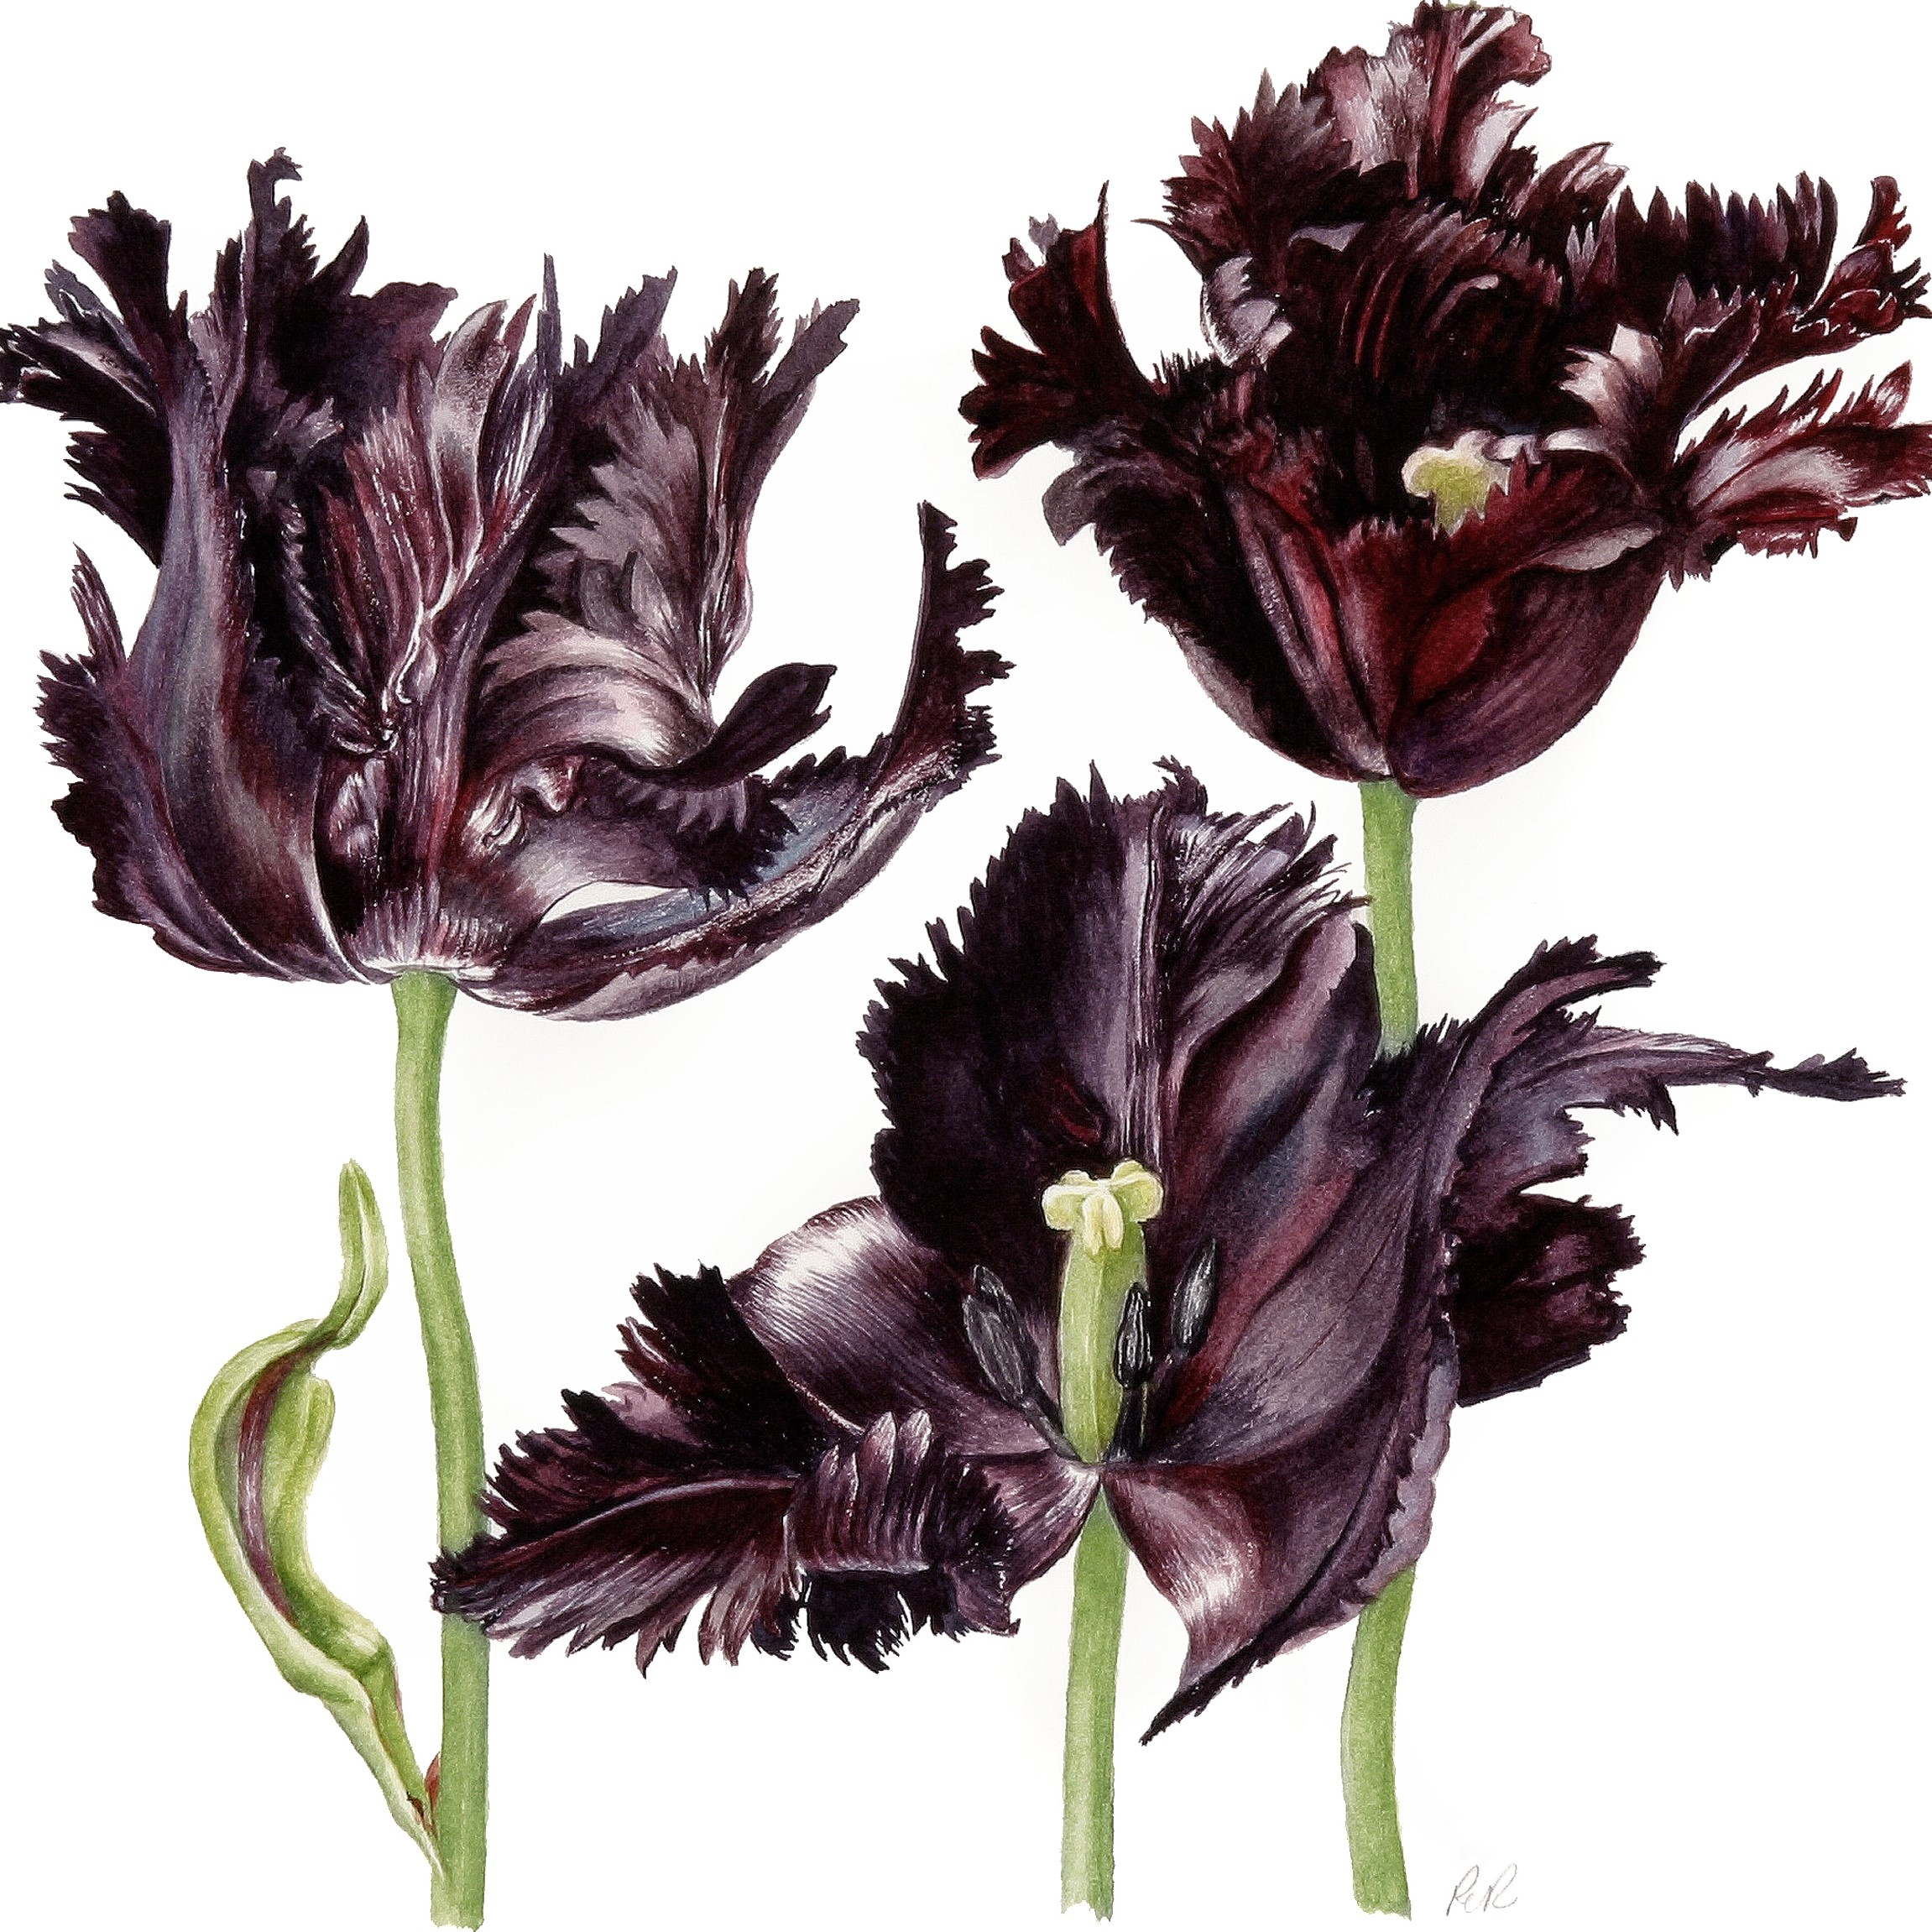 /uploads/courses/1320-02/Parrot_Tulips.jpg